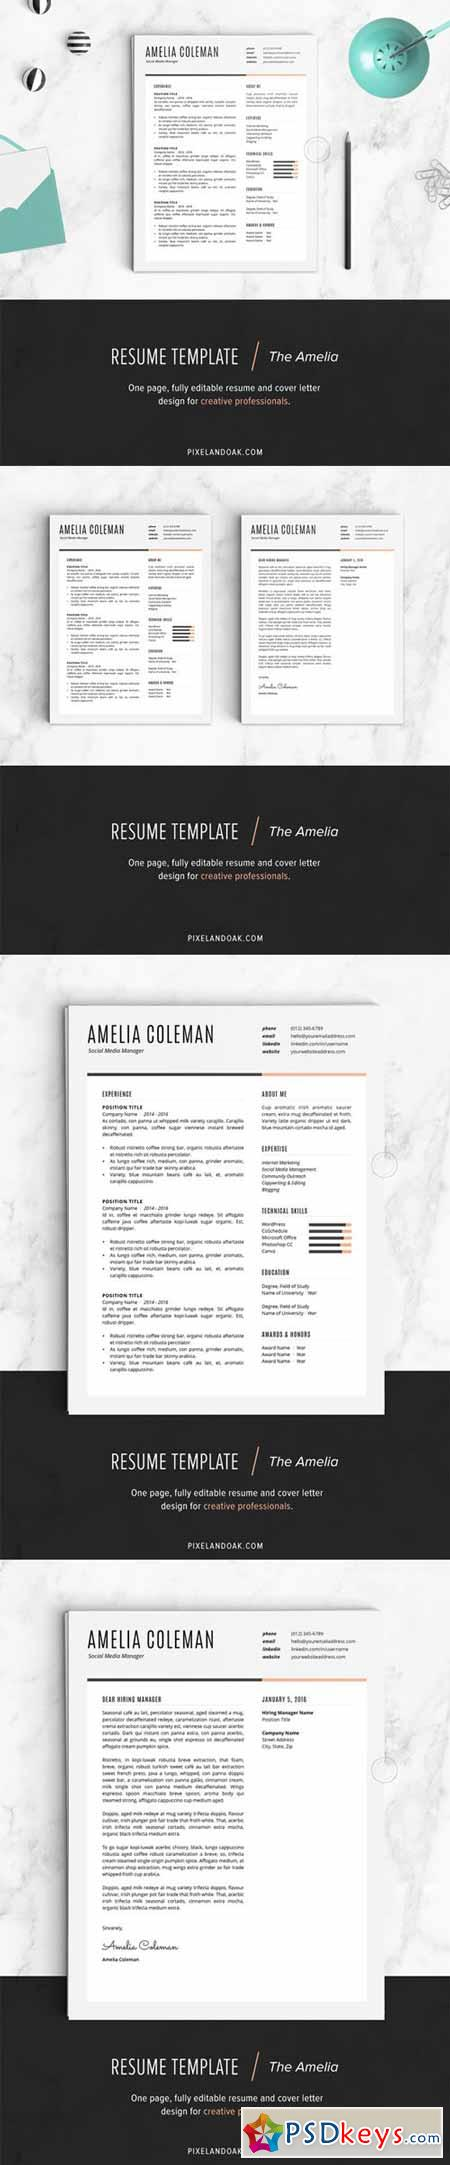 Resume Template The Amelia 482115